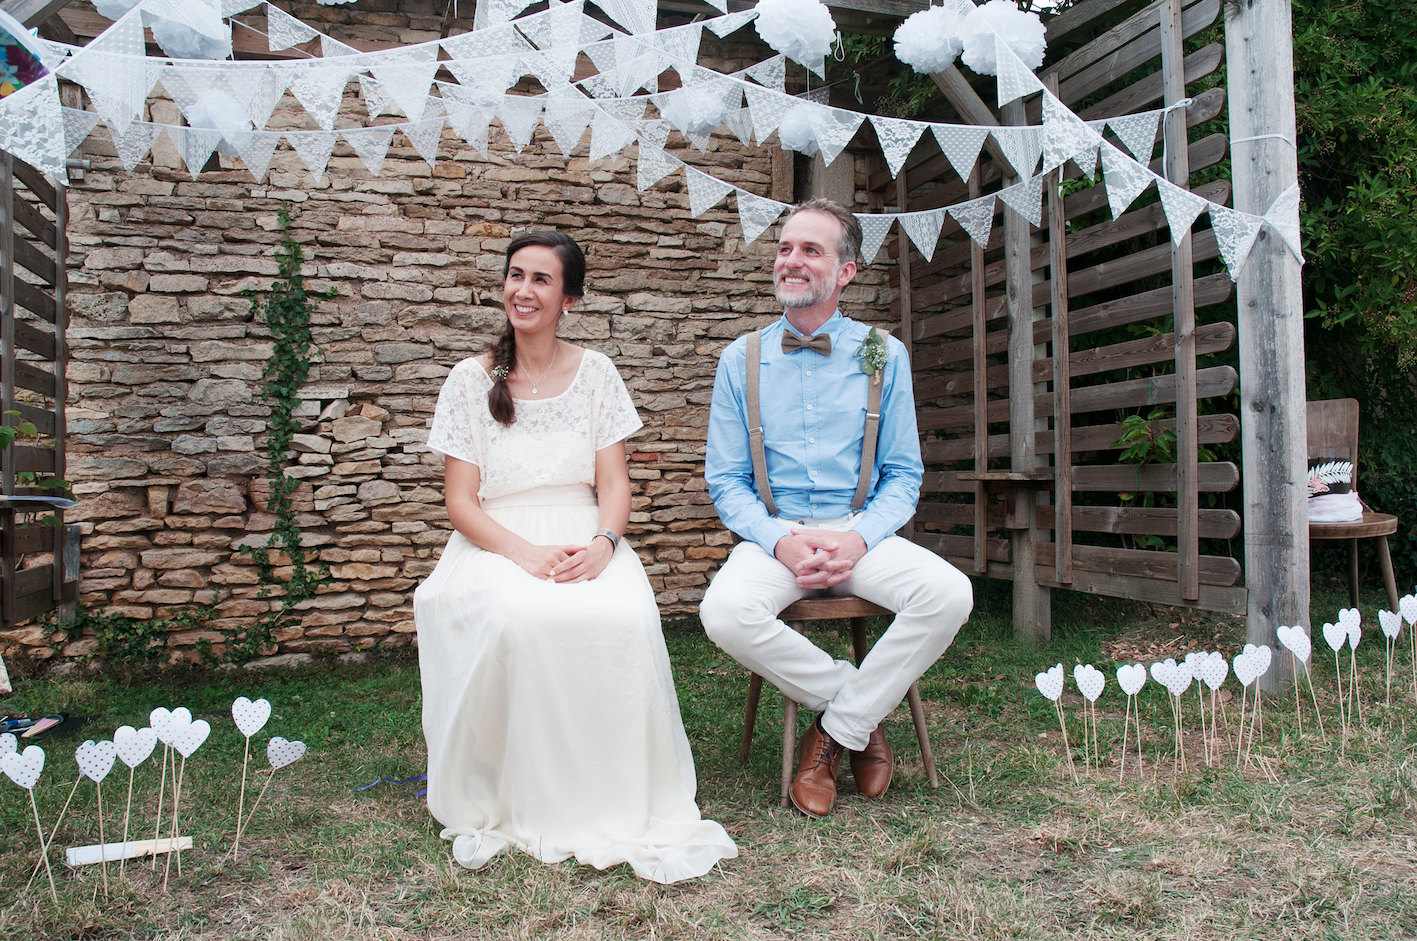 Nadia's simple outdoors wedding ~ Larimeloom bridal separates